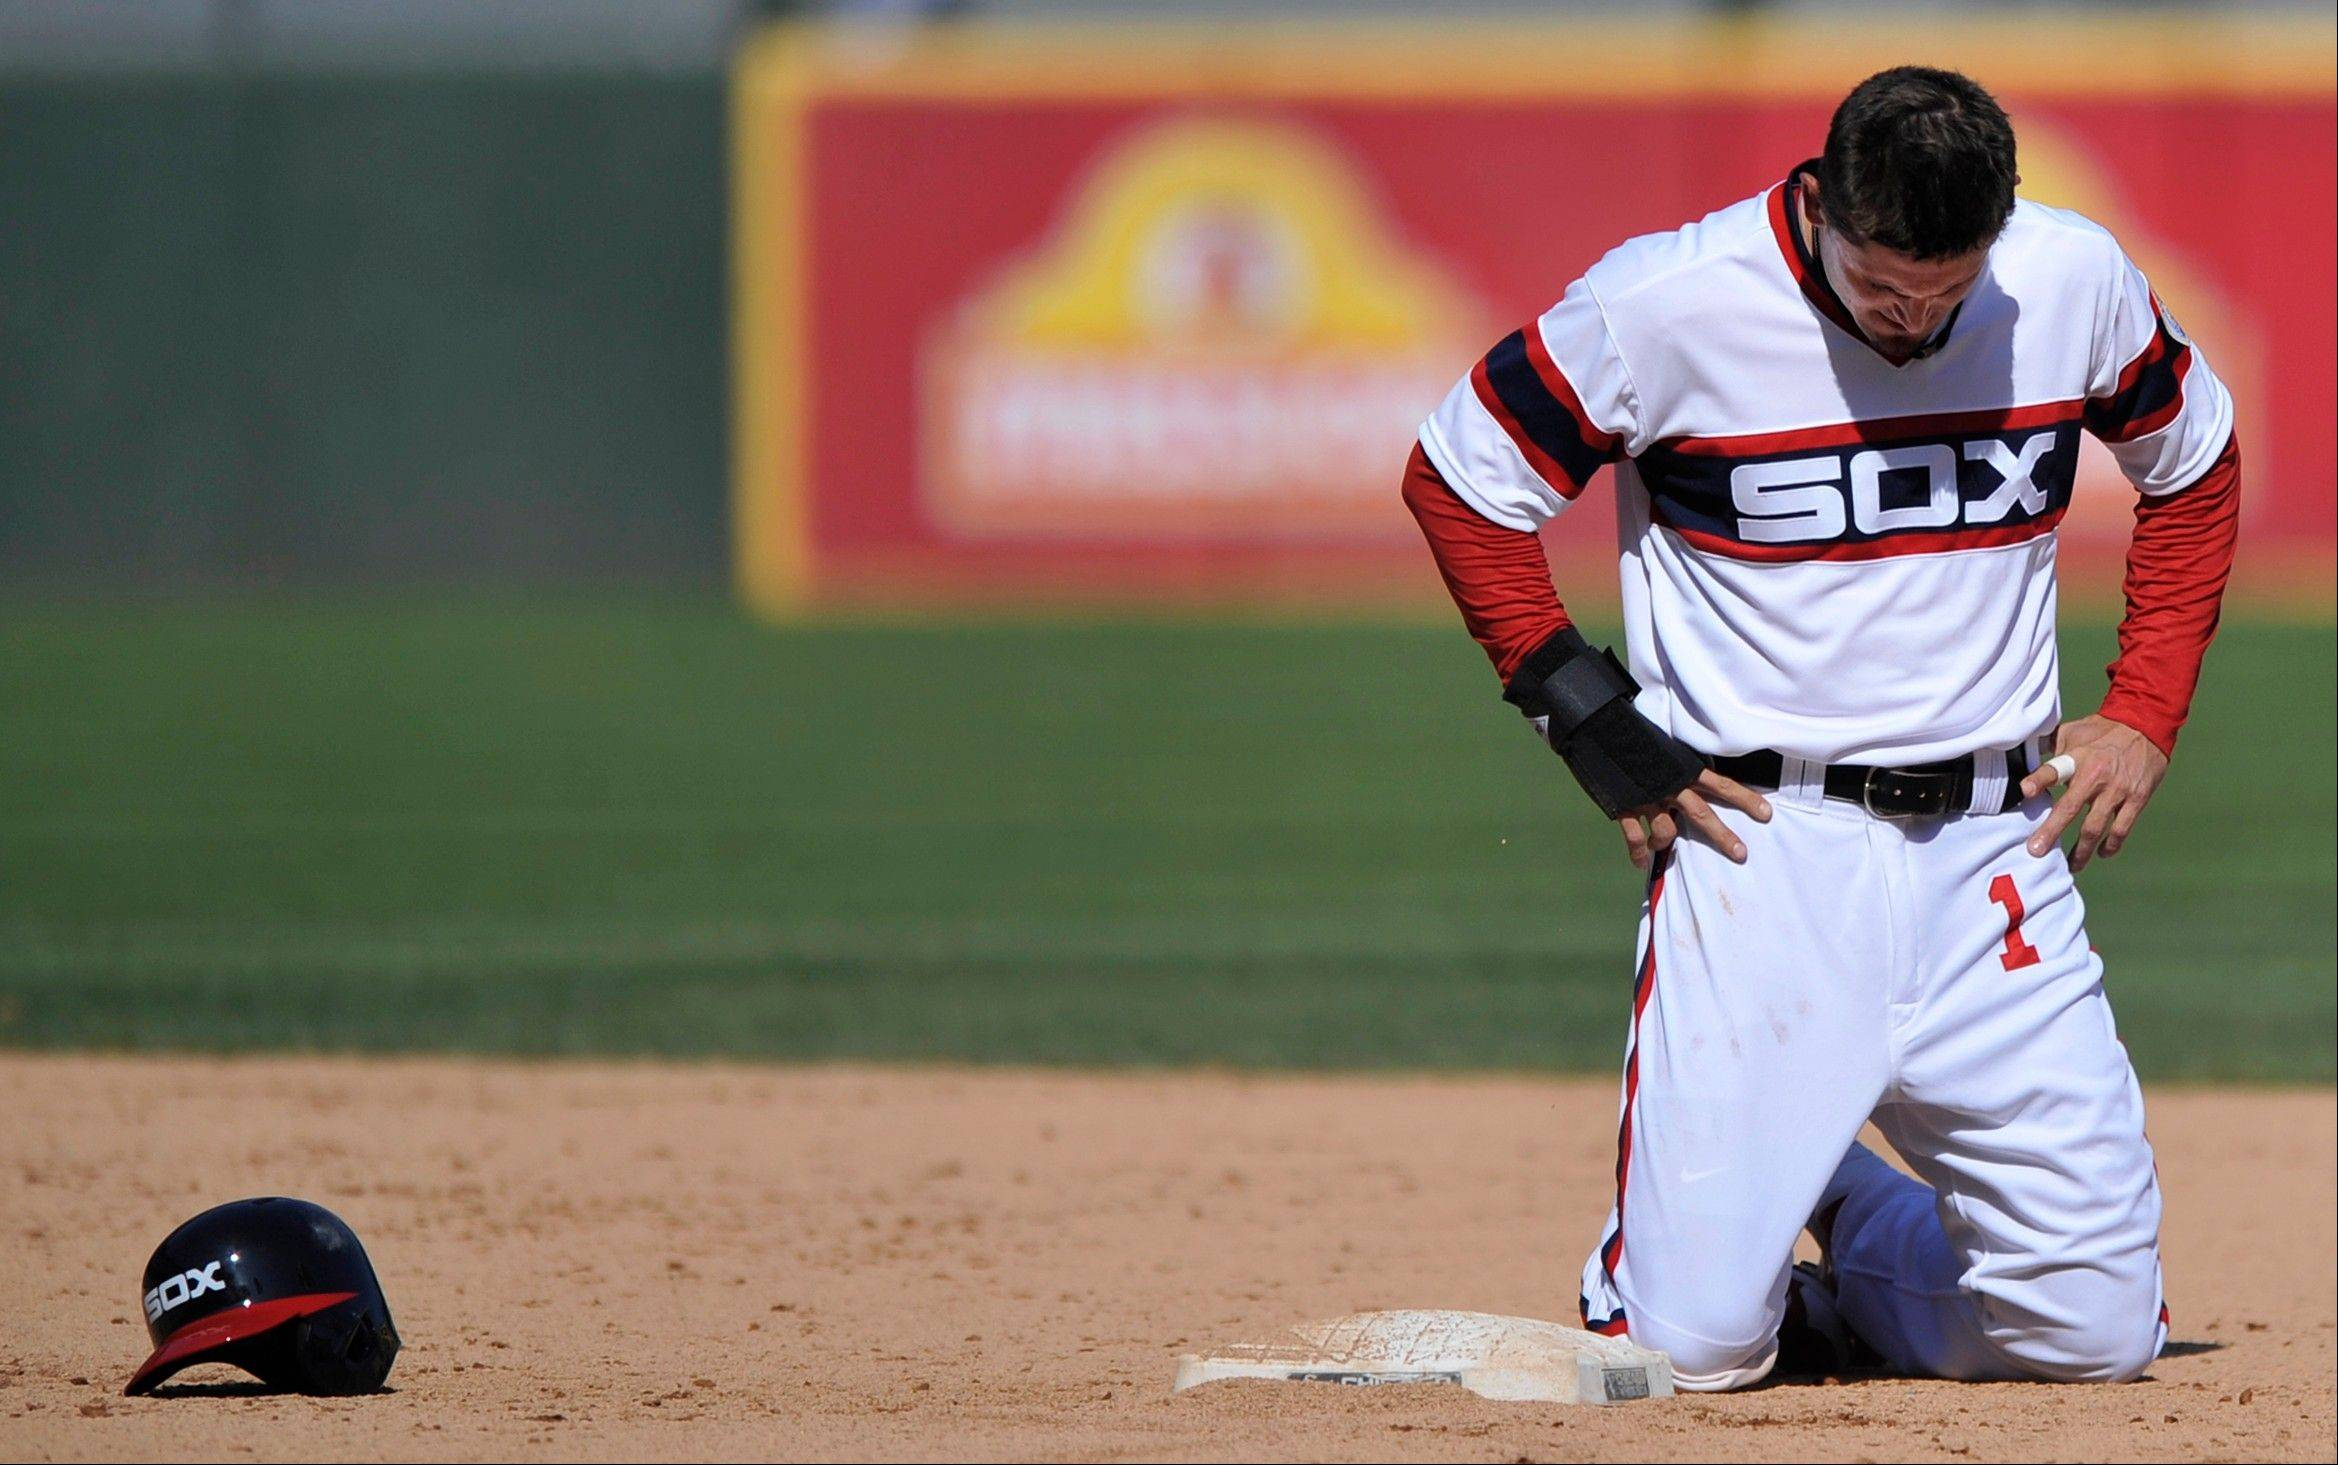 Tyler Greene reacts after being forced out at second base by Tampa Bay second baseman Ryan Roberts during the eighth inning of an MLB baseball game in Chicago, Sunday, April 28, 2013. Tampa won 8-3.